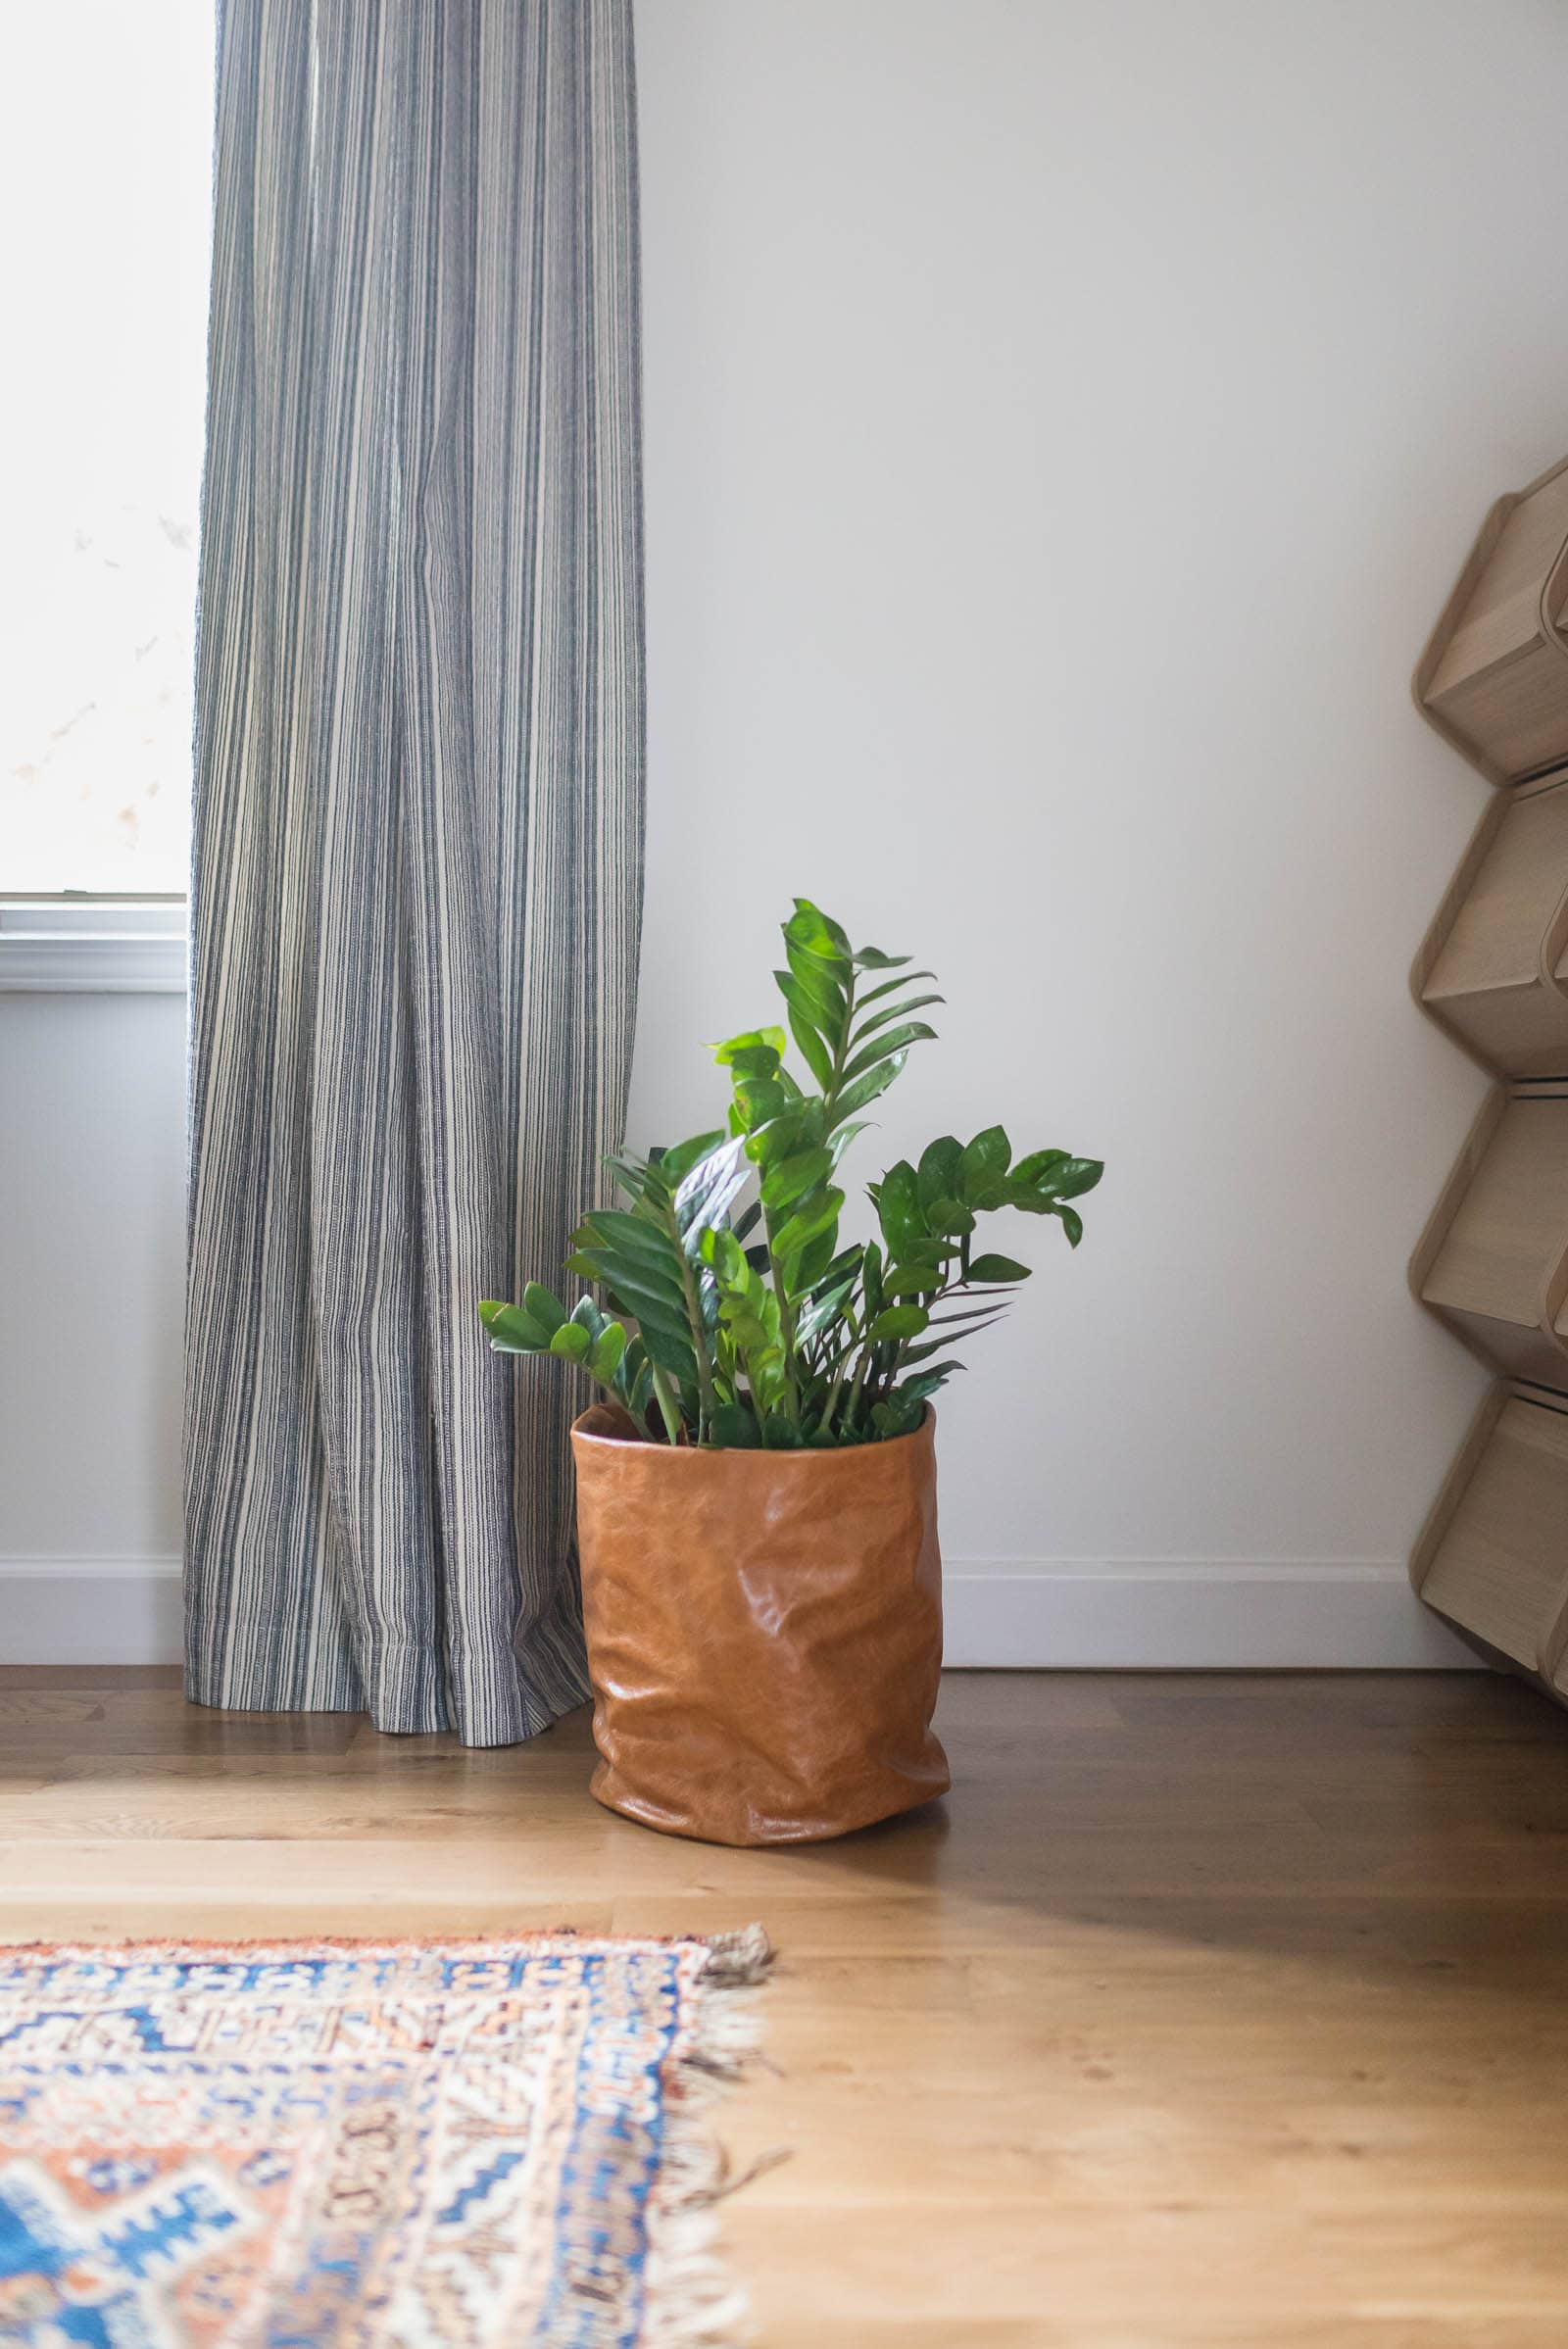 DIY Plant Bag made with scrap leather remnants